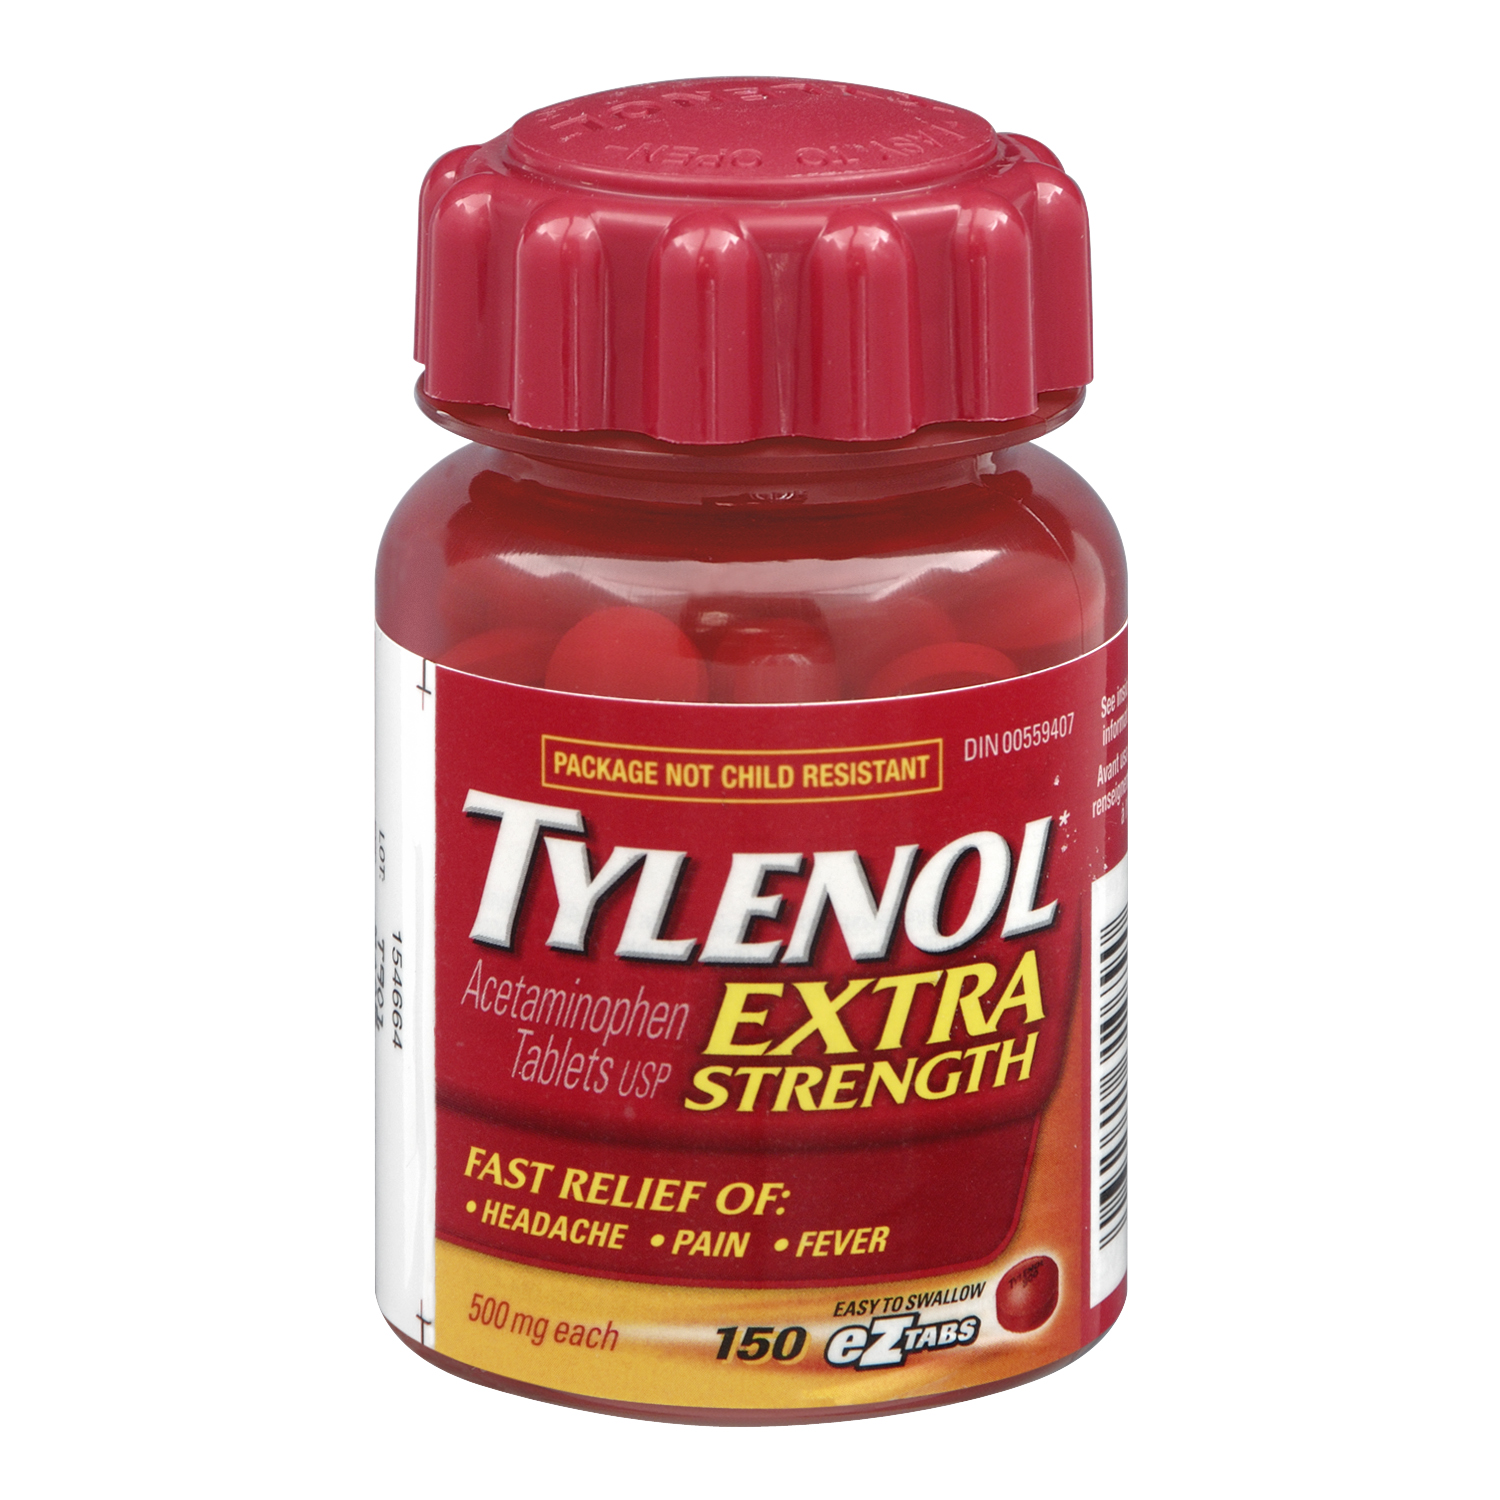 Advise Chewable tylenol adults consider